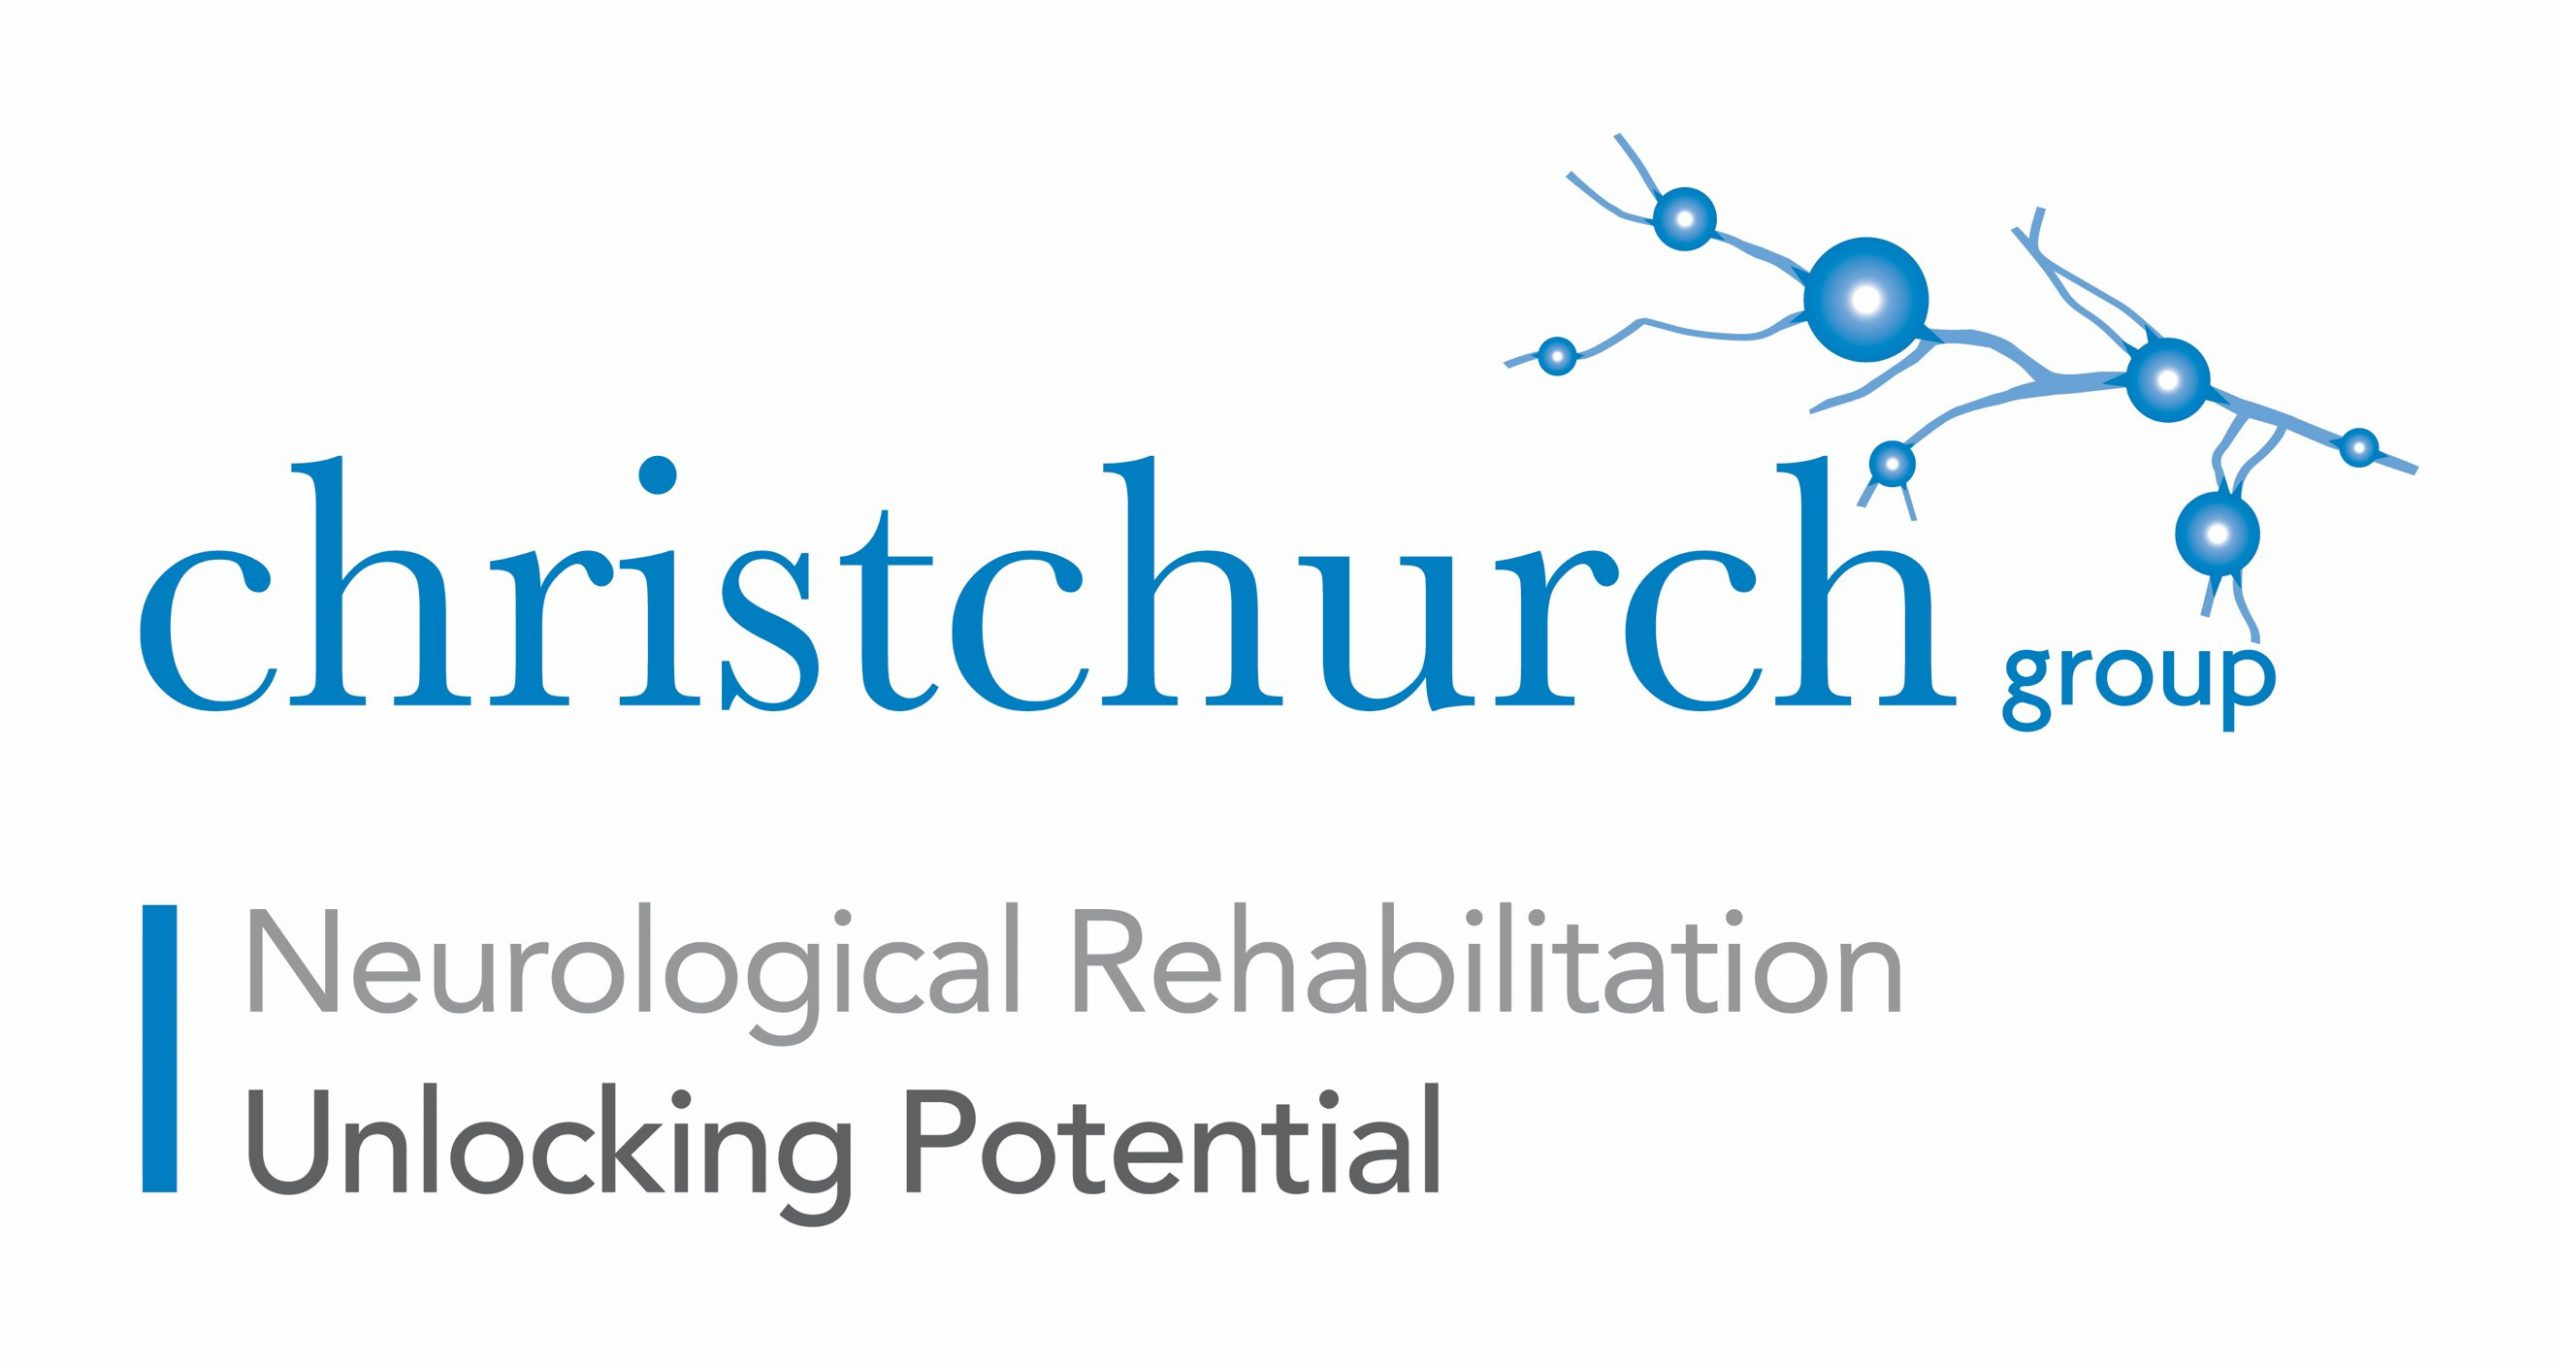 https://www.absolute-interpreting.co.uk/wp-content/uploads/2020/06/christchurch-Neurological-Rehabilitation1-scaled.jpg